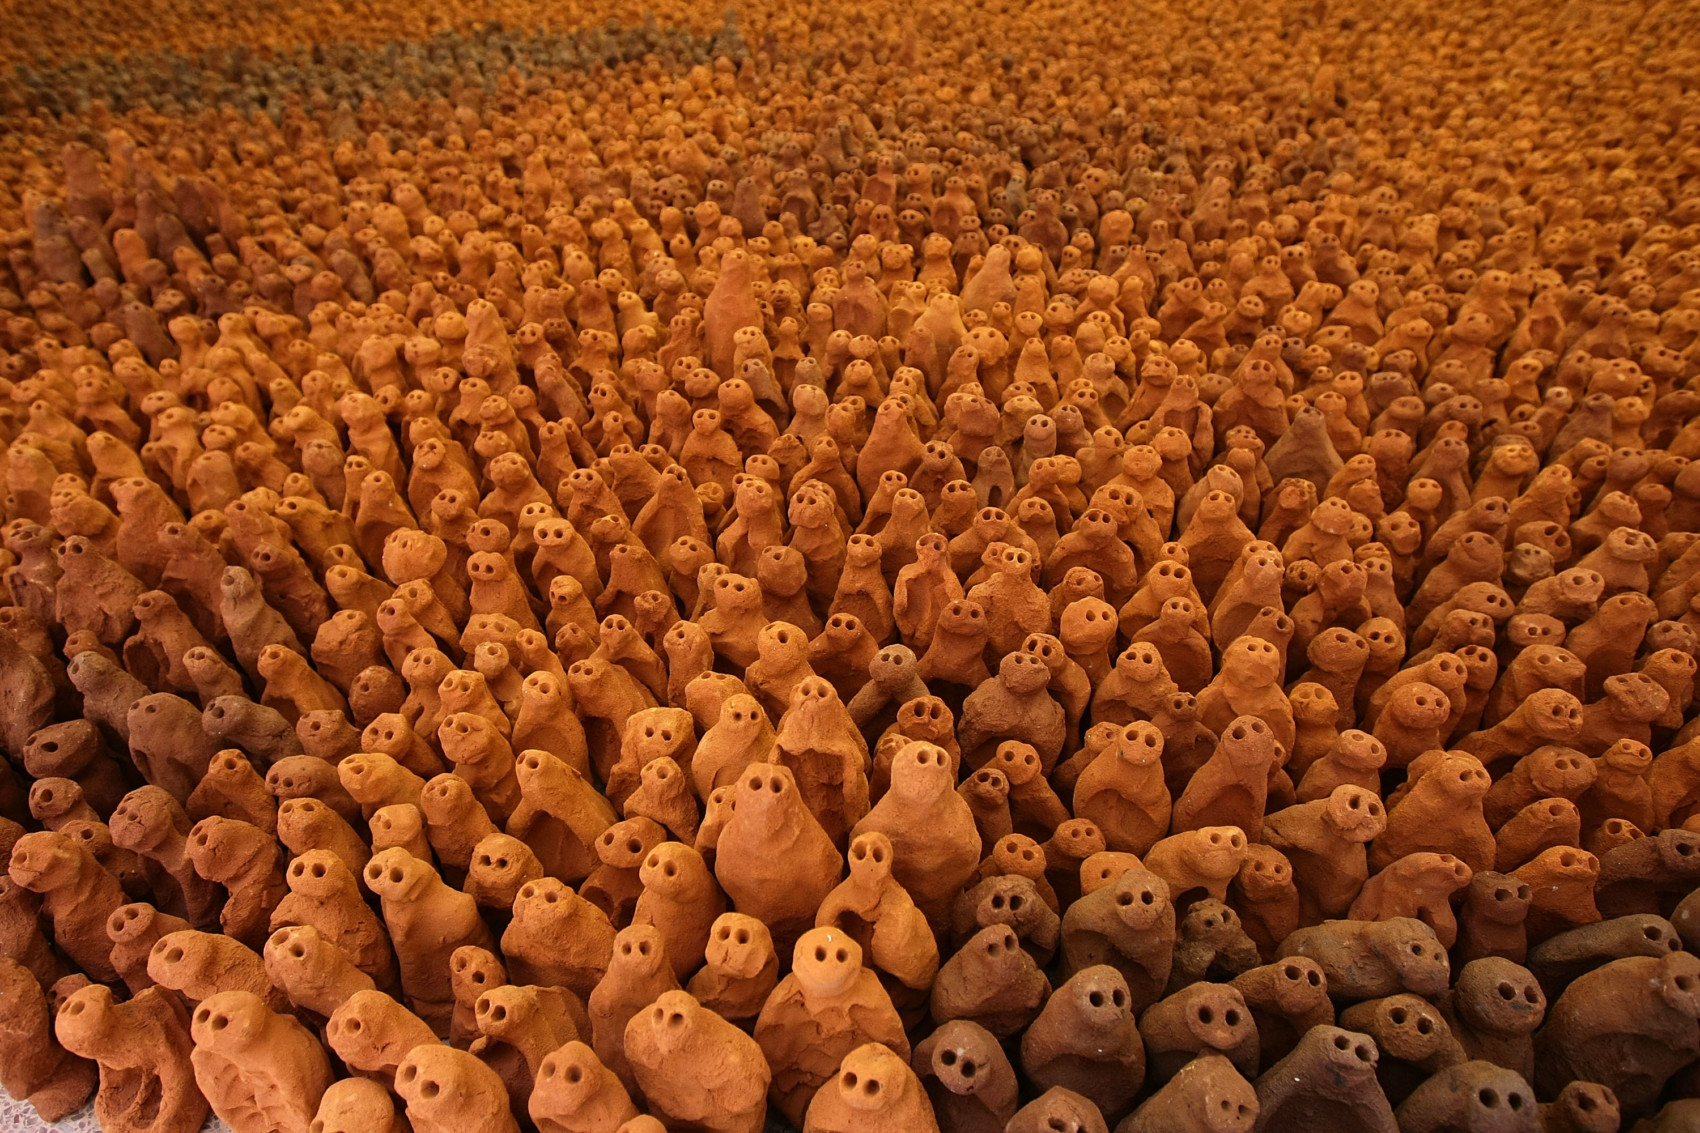 Anthony Gormley Terracotta Figures Return To Their Birthplace. Foto ©Christopher Furlong/Getty Images